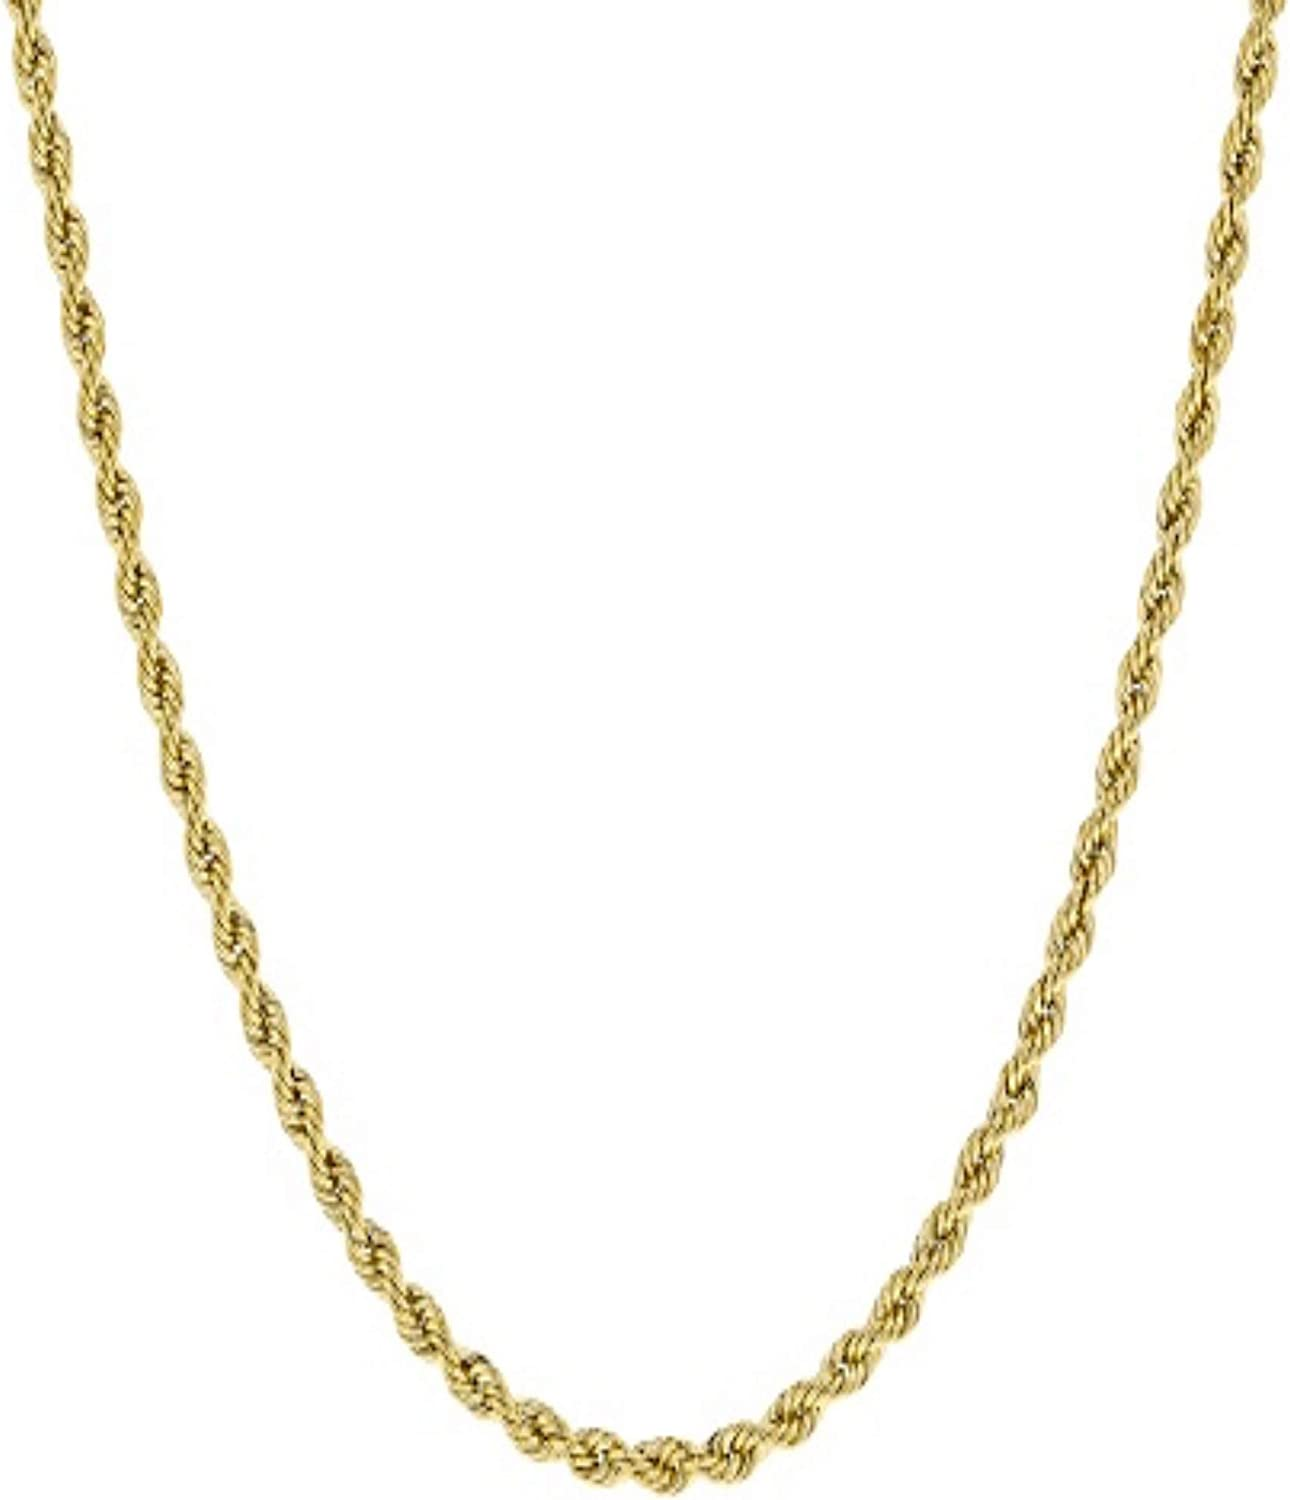 Essential Elixir 3mm Rope Chain Necklace 24k Real Gold P 20cm Cheap mail order gift specialty store